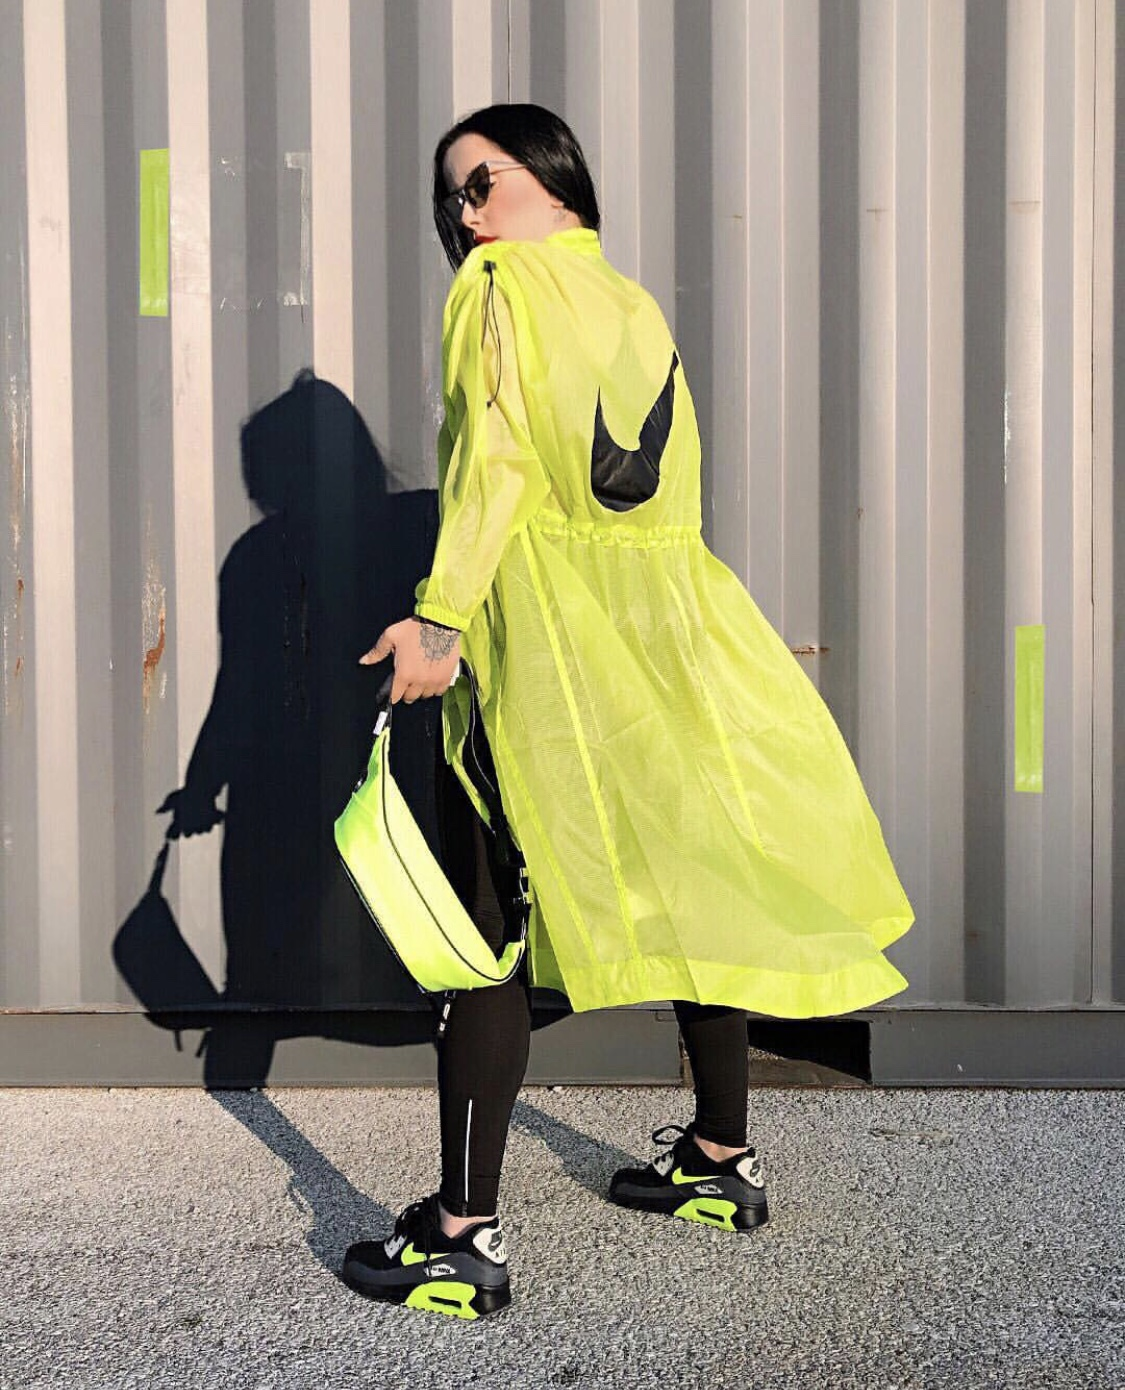 562a5cb6d515 Style Your Spring With Nike WMNS Sportswear Jacket — CNK DailyChicksNKicks